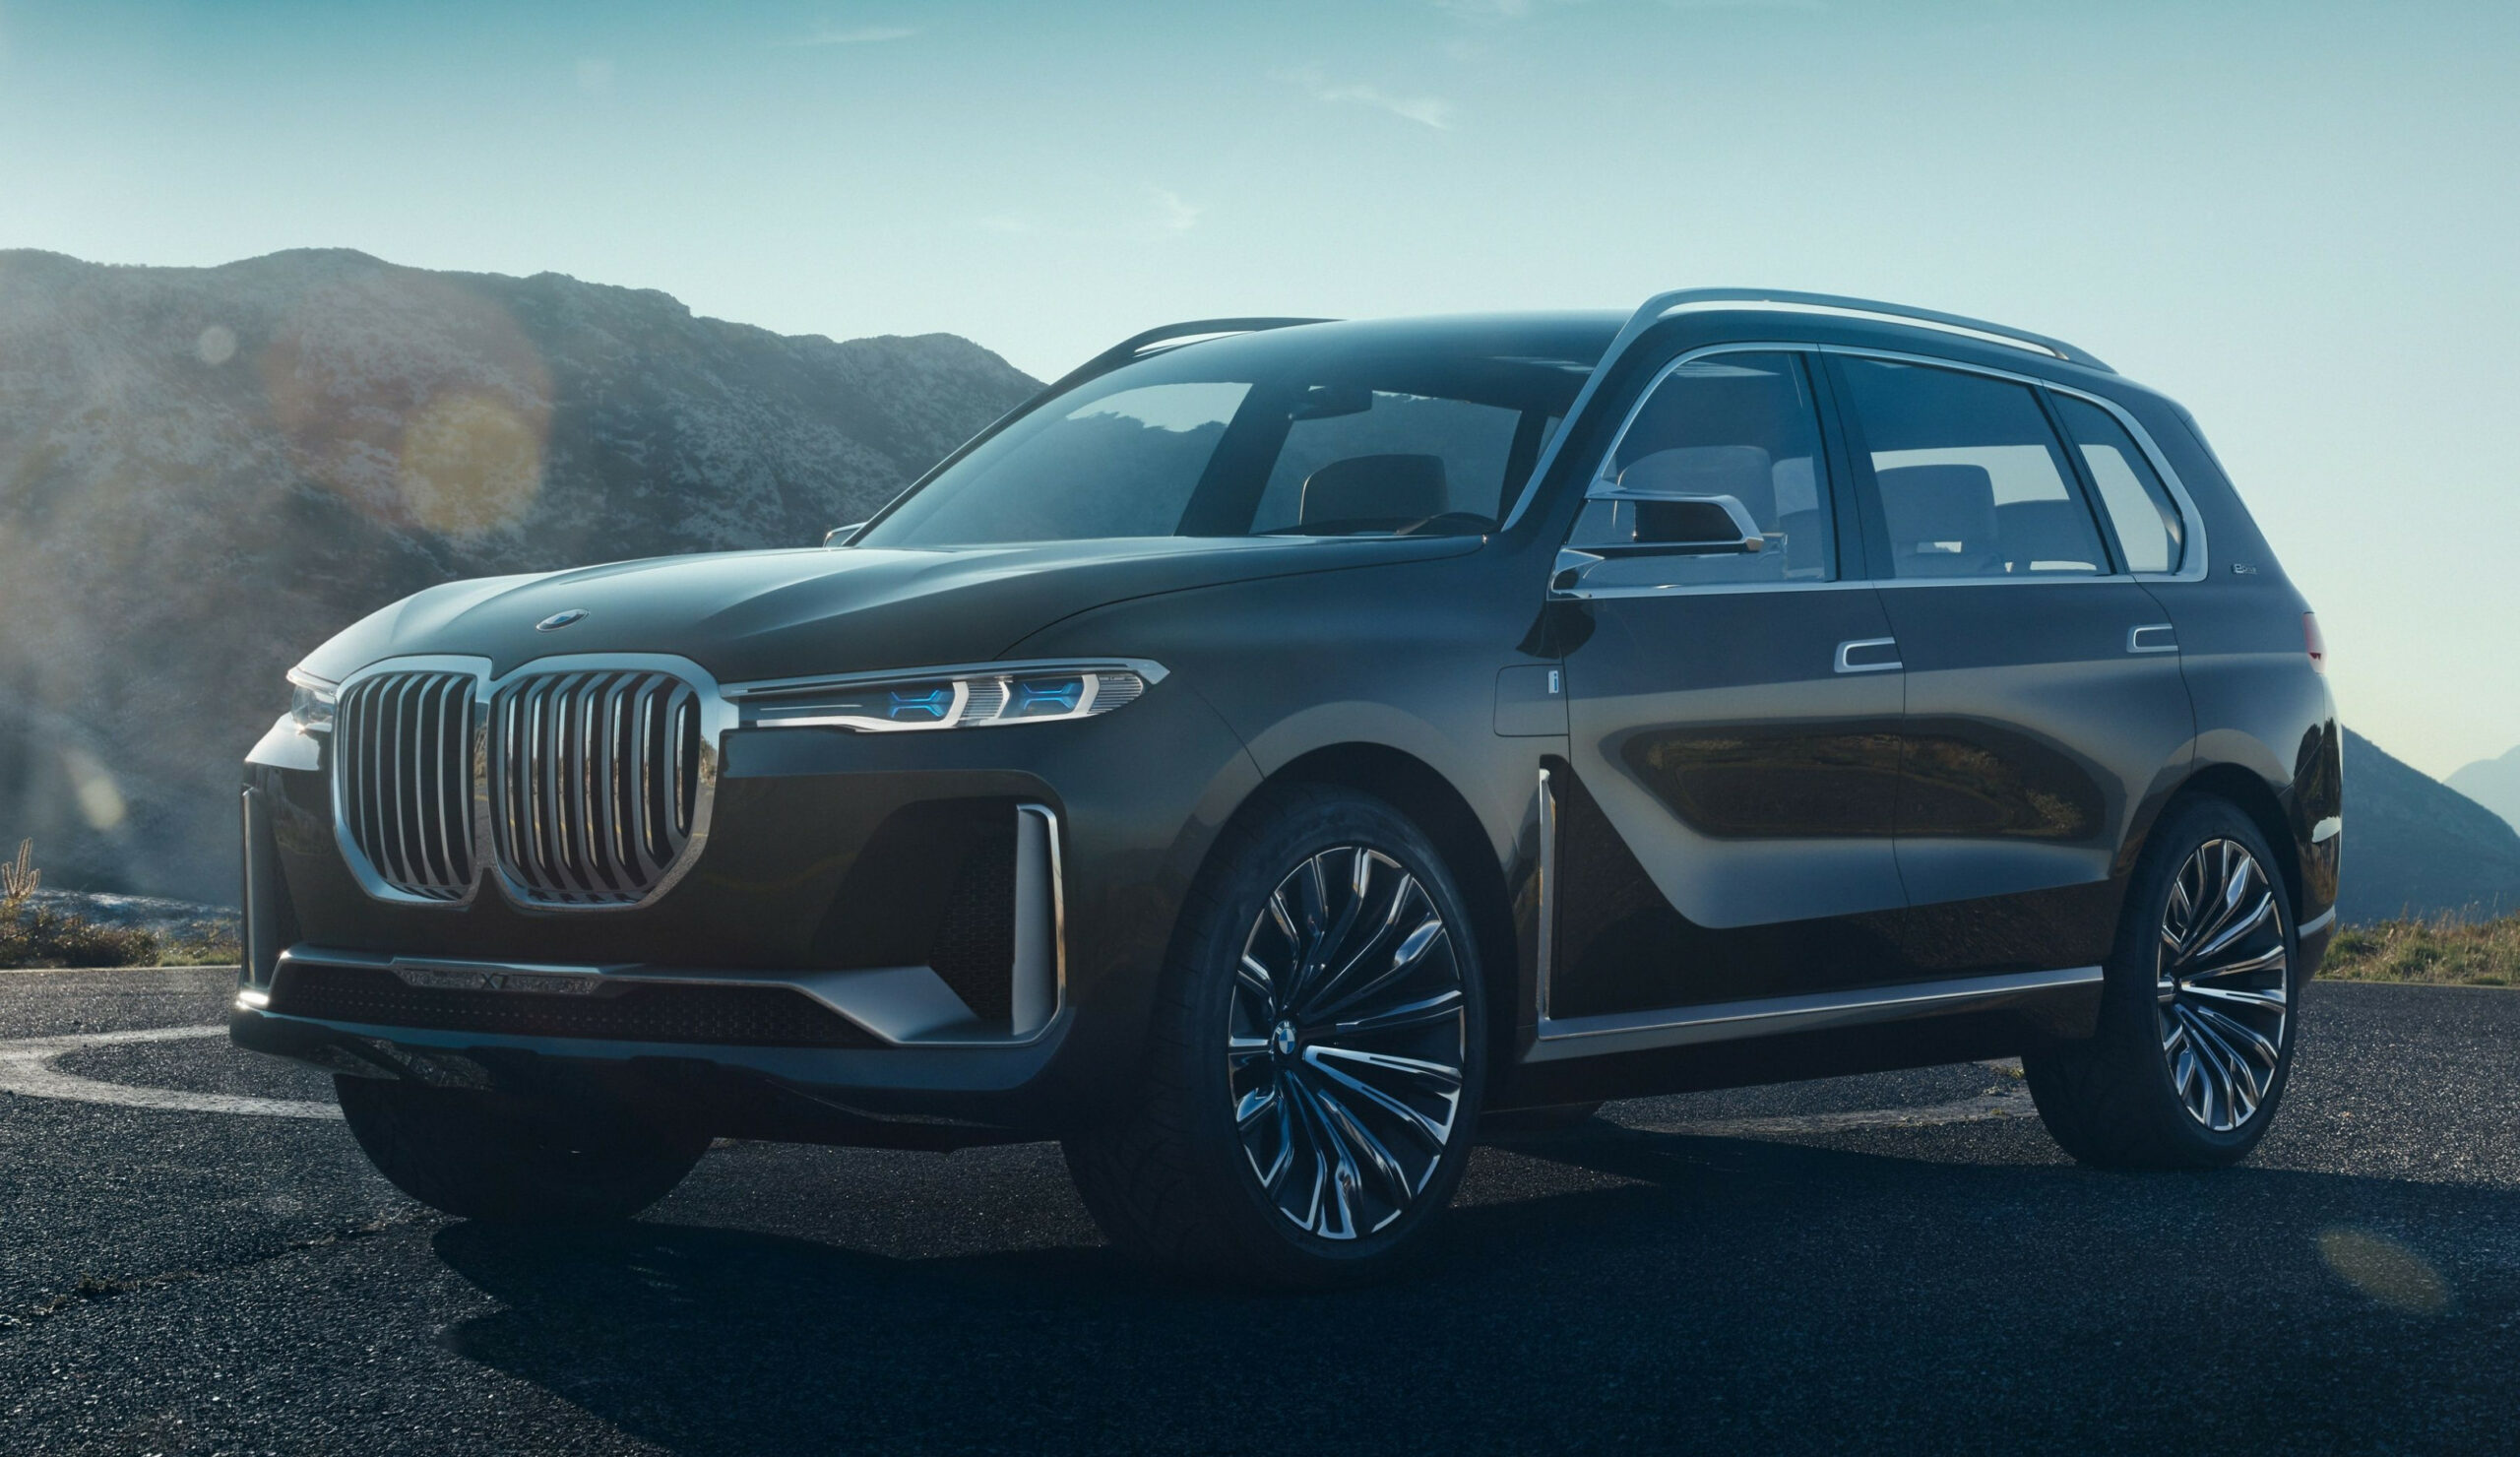 8+ 8 BMW x8 harga Release Date, Price and Review - 2020 bmw x1 harga